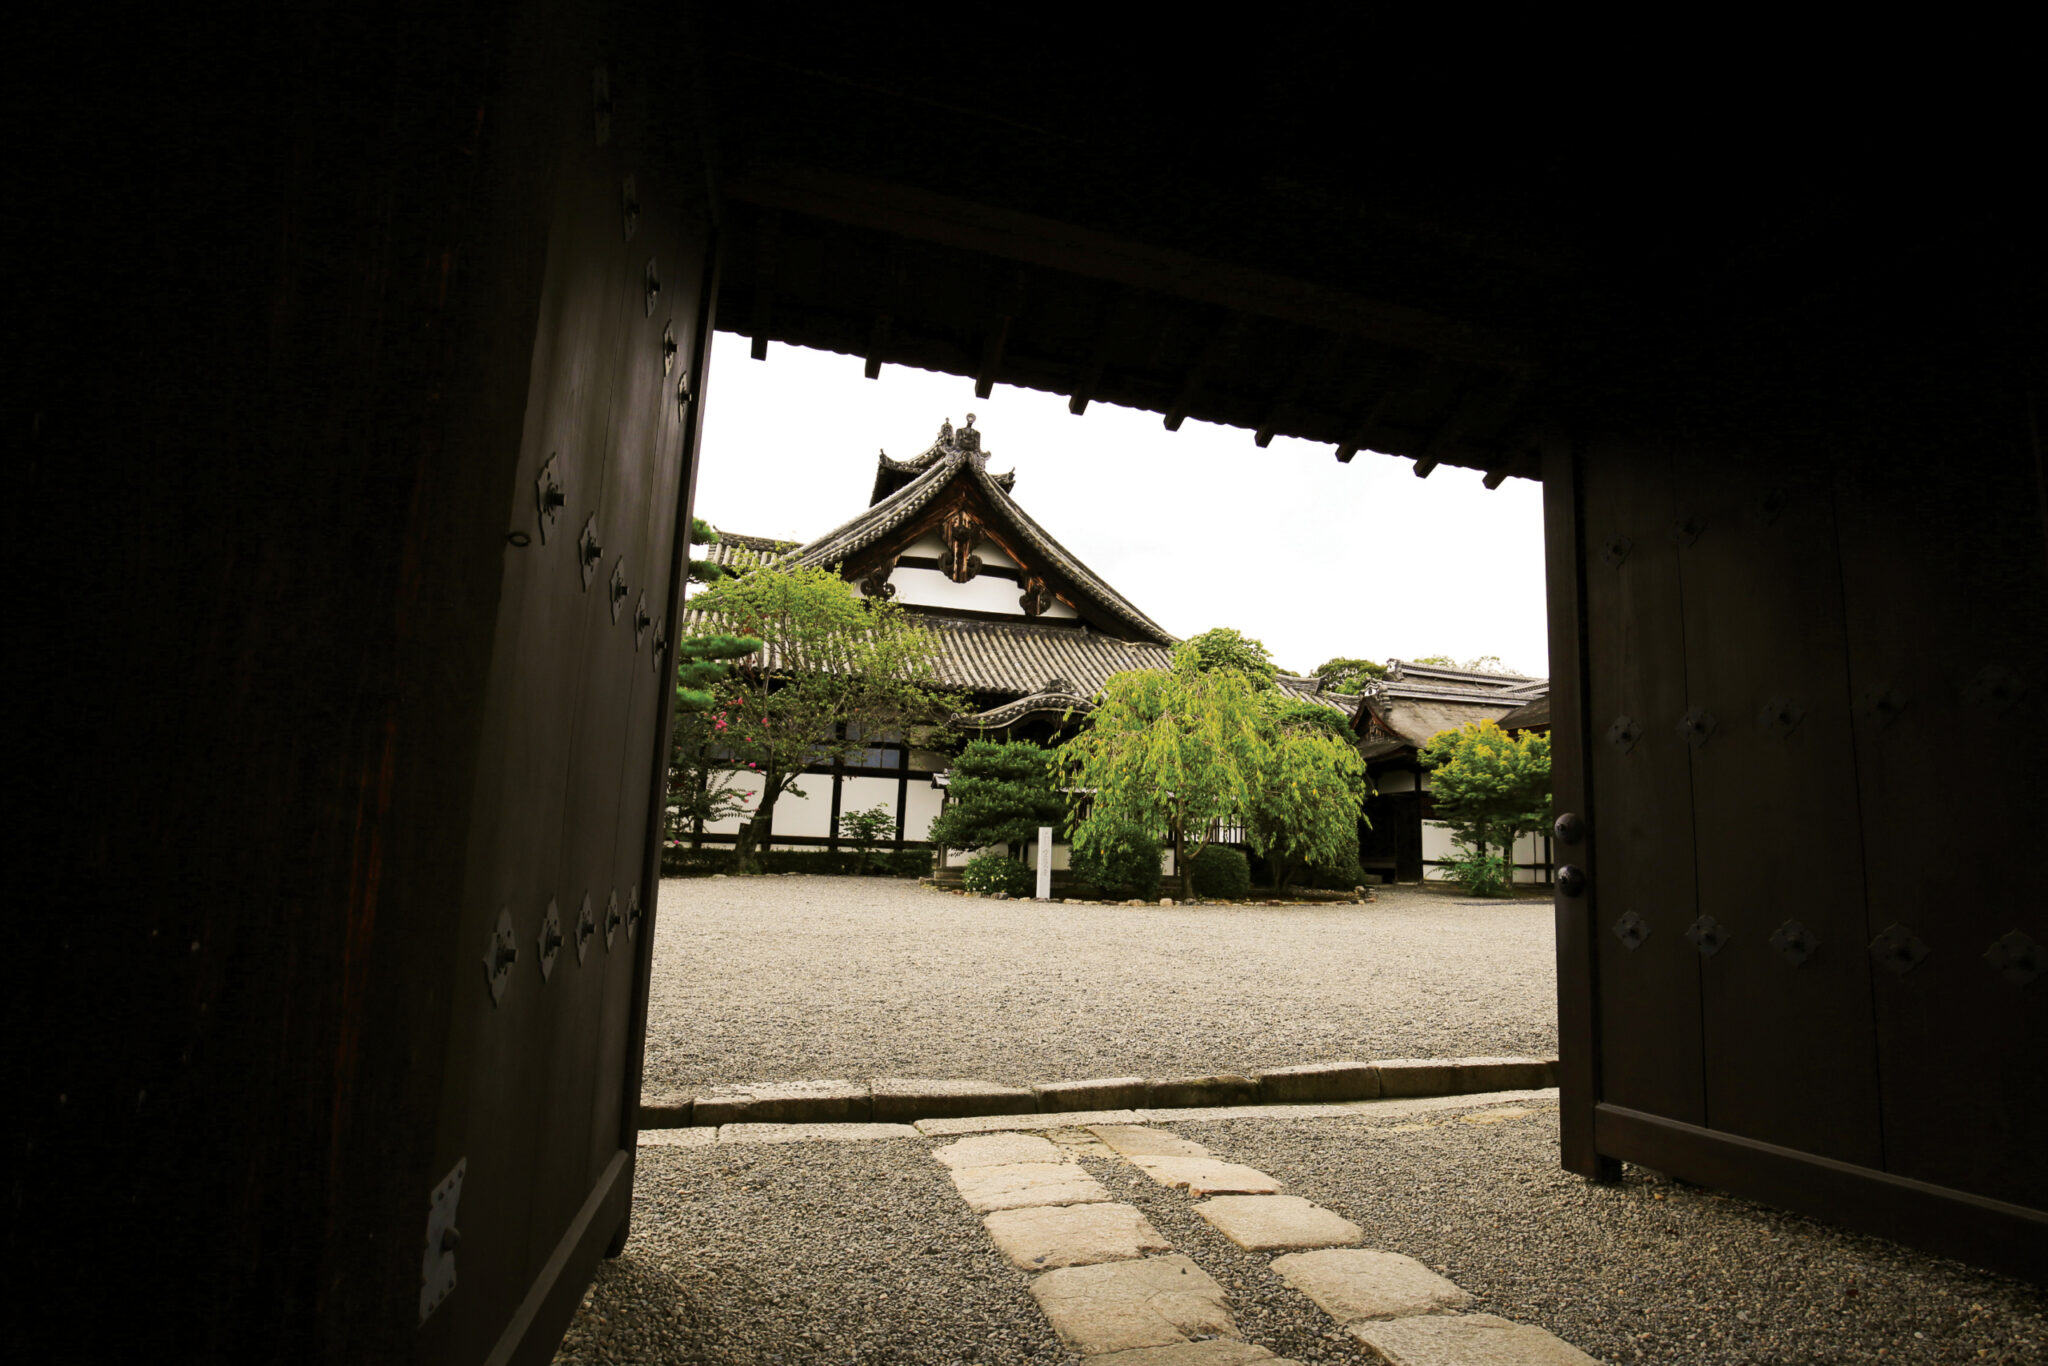 Dark but warm photograph taken at the entrance of a temple. Photograph was taken in Kyoto, Japan